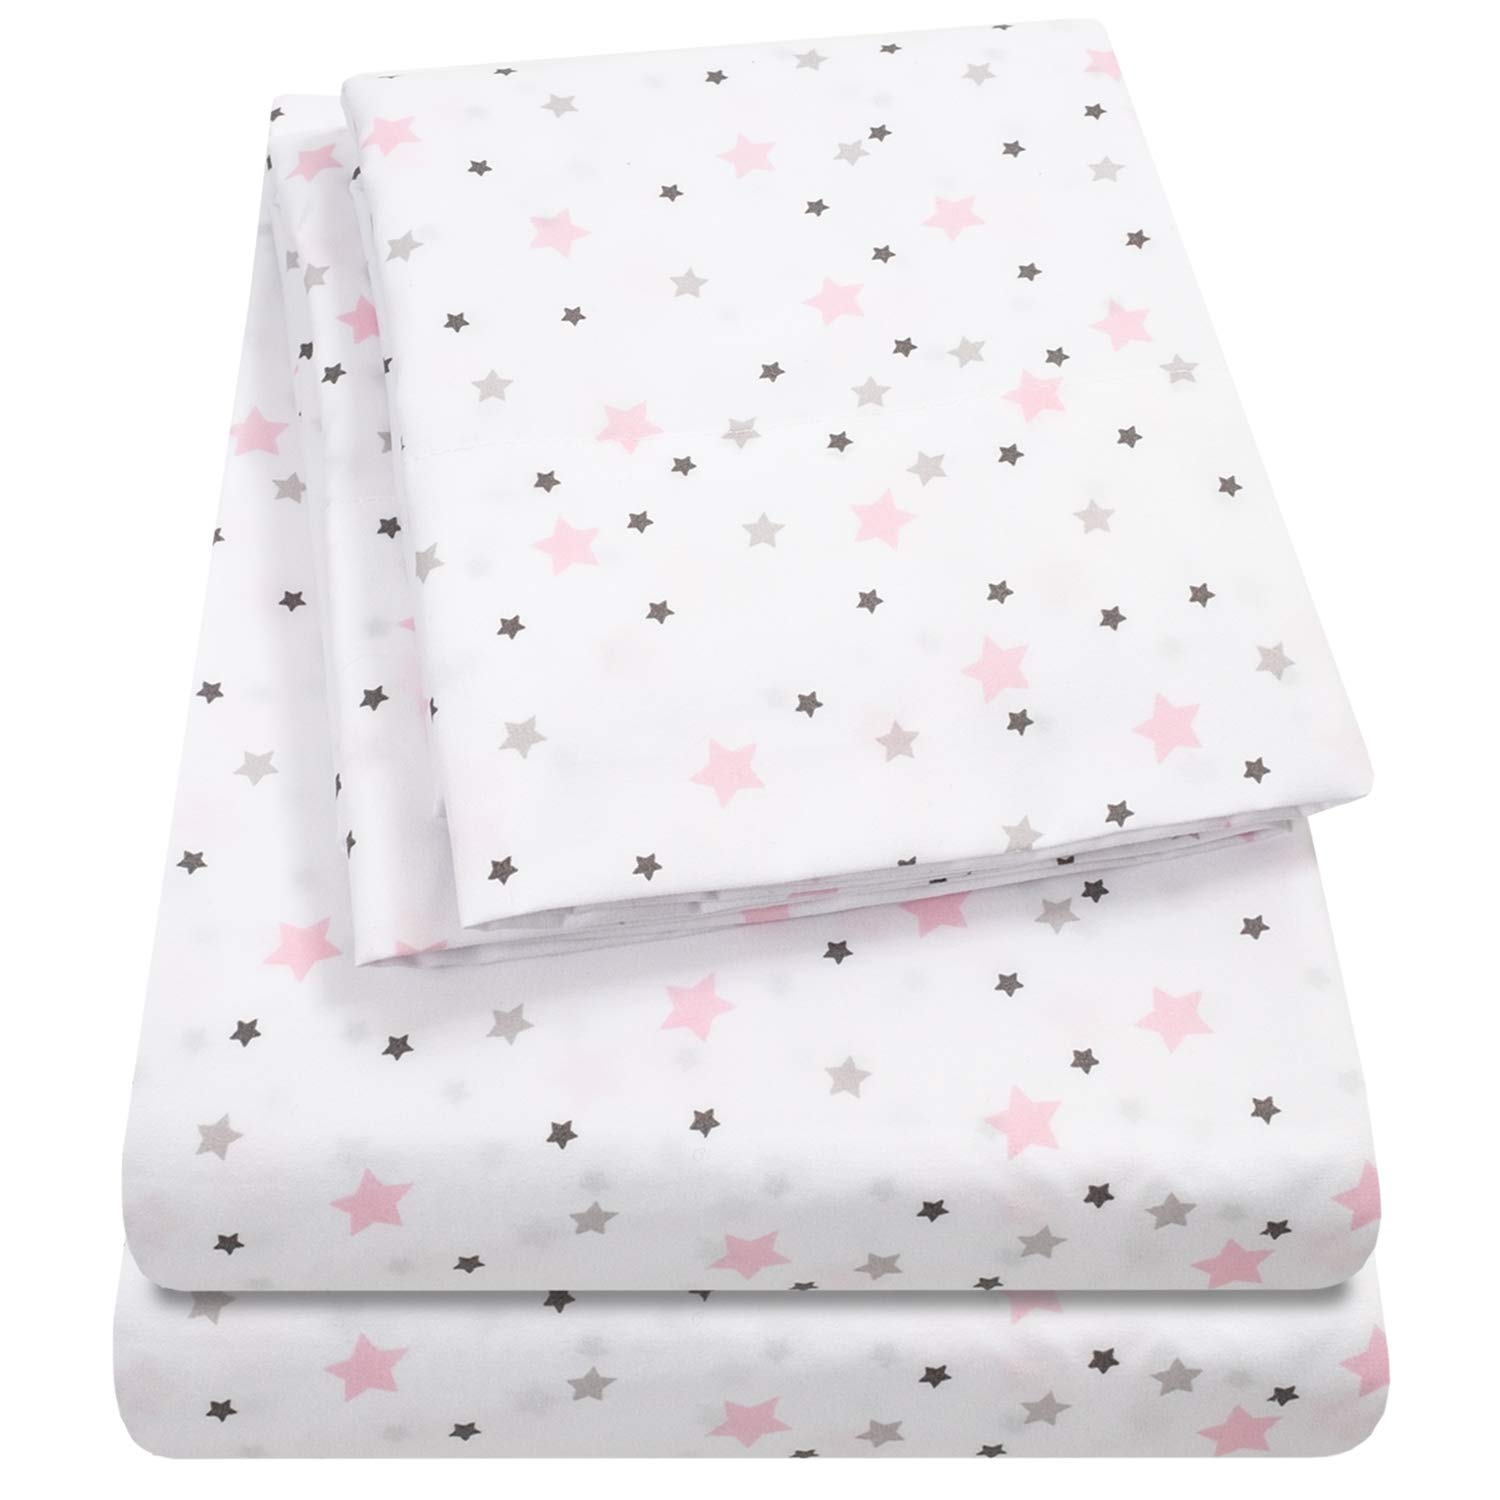 1500 Supreme Kids Bed Sheet Collection - Fun Colorful and Comfortable Boys and Girls Toddler Sheet Sets - Deep Pocket Wrinkle Free Hypoallergenic Soft and Cozy Bedding - Twin, Stars